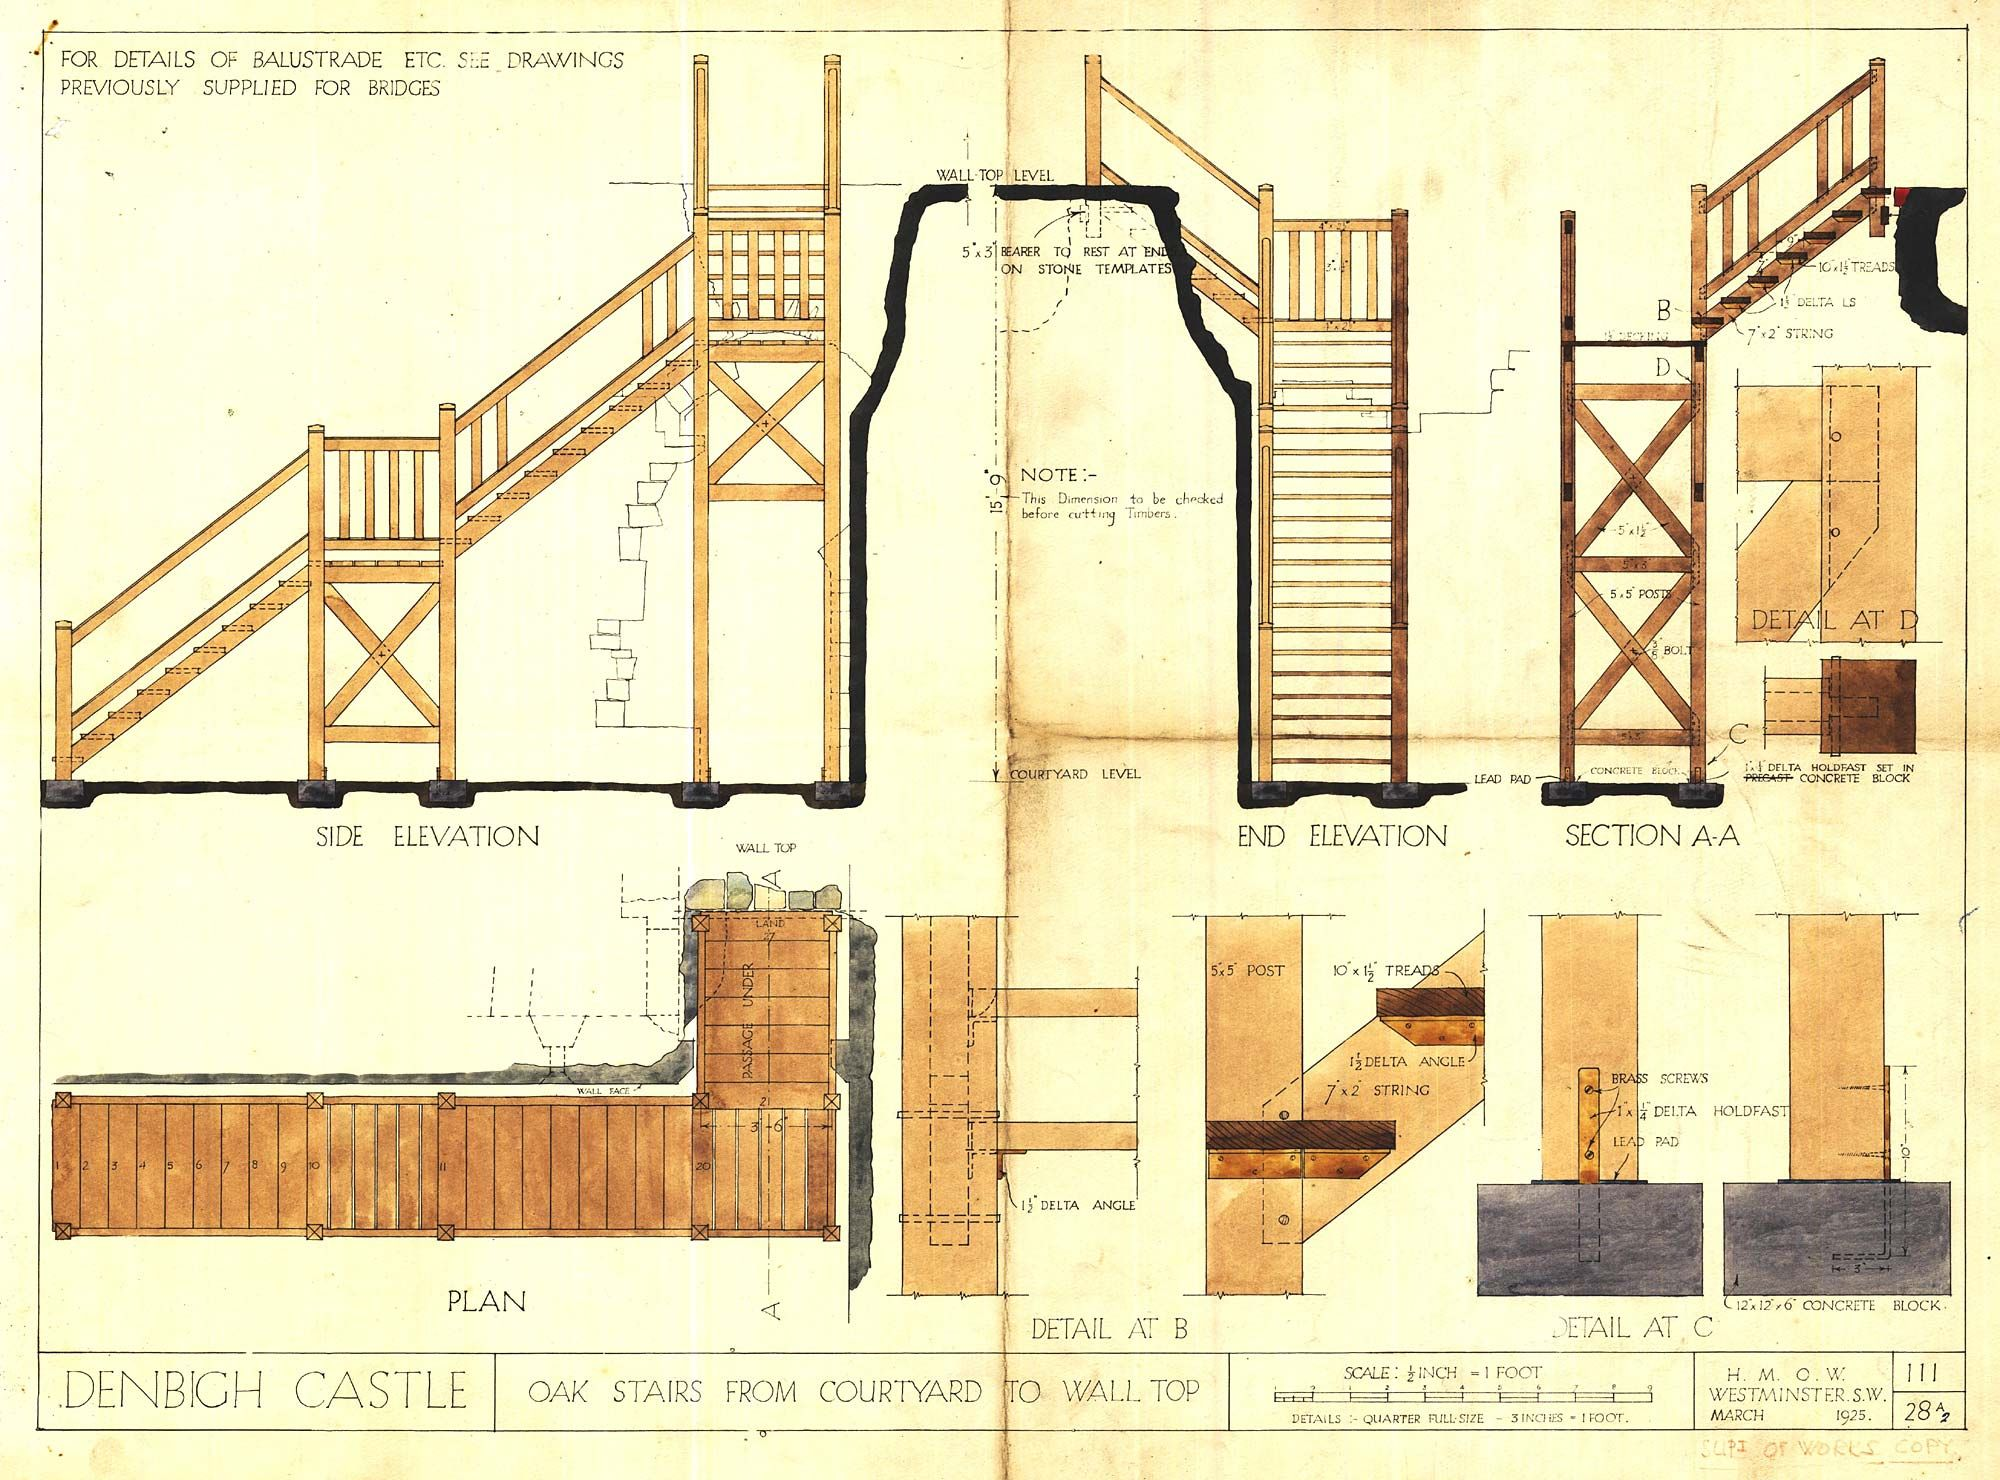 Front Elevation Of Staircase : Plans elevation and section drawings of stairs to wall